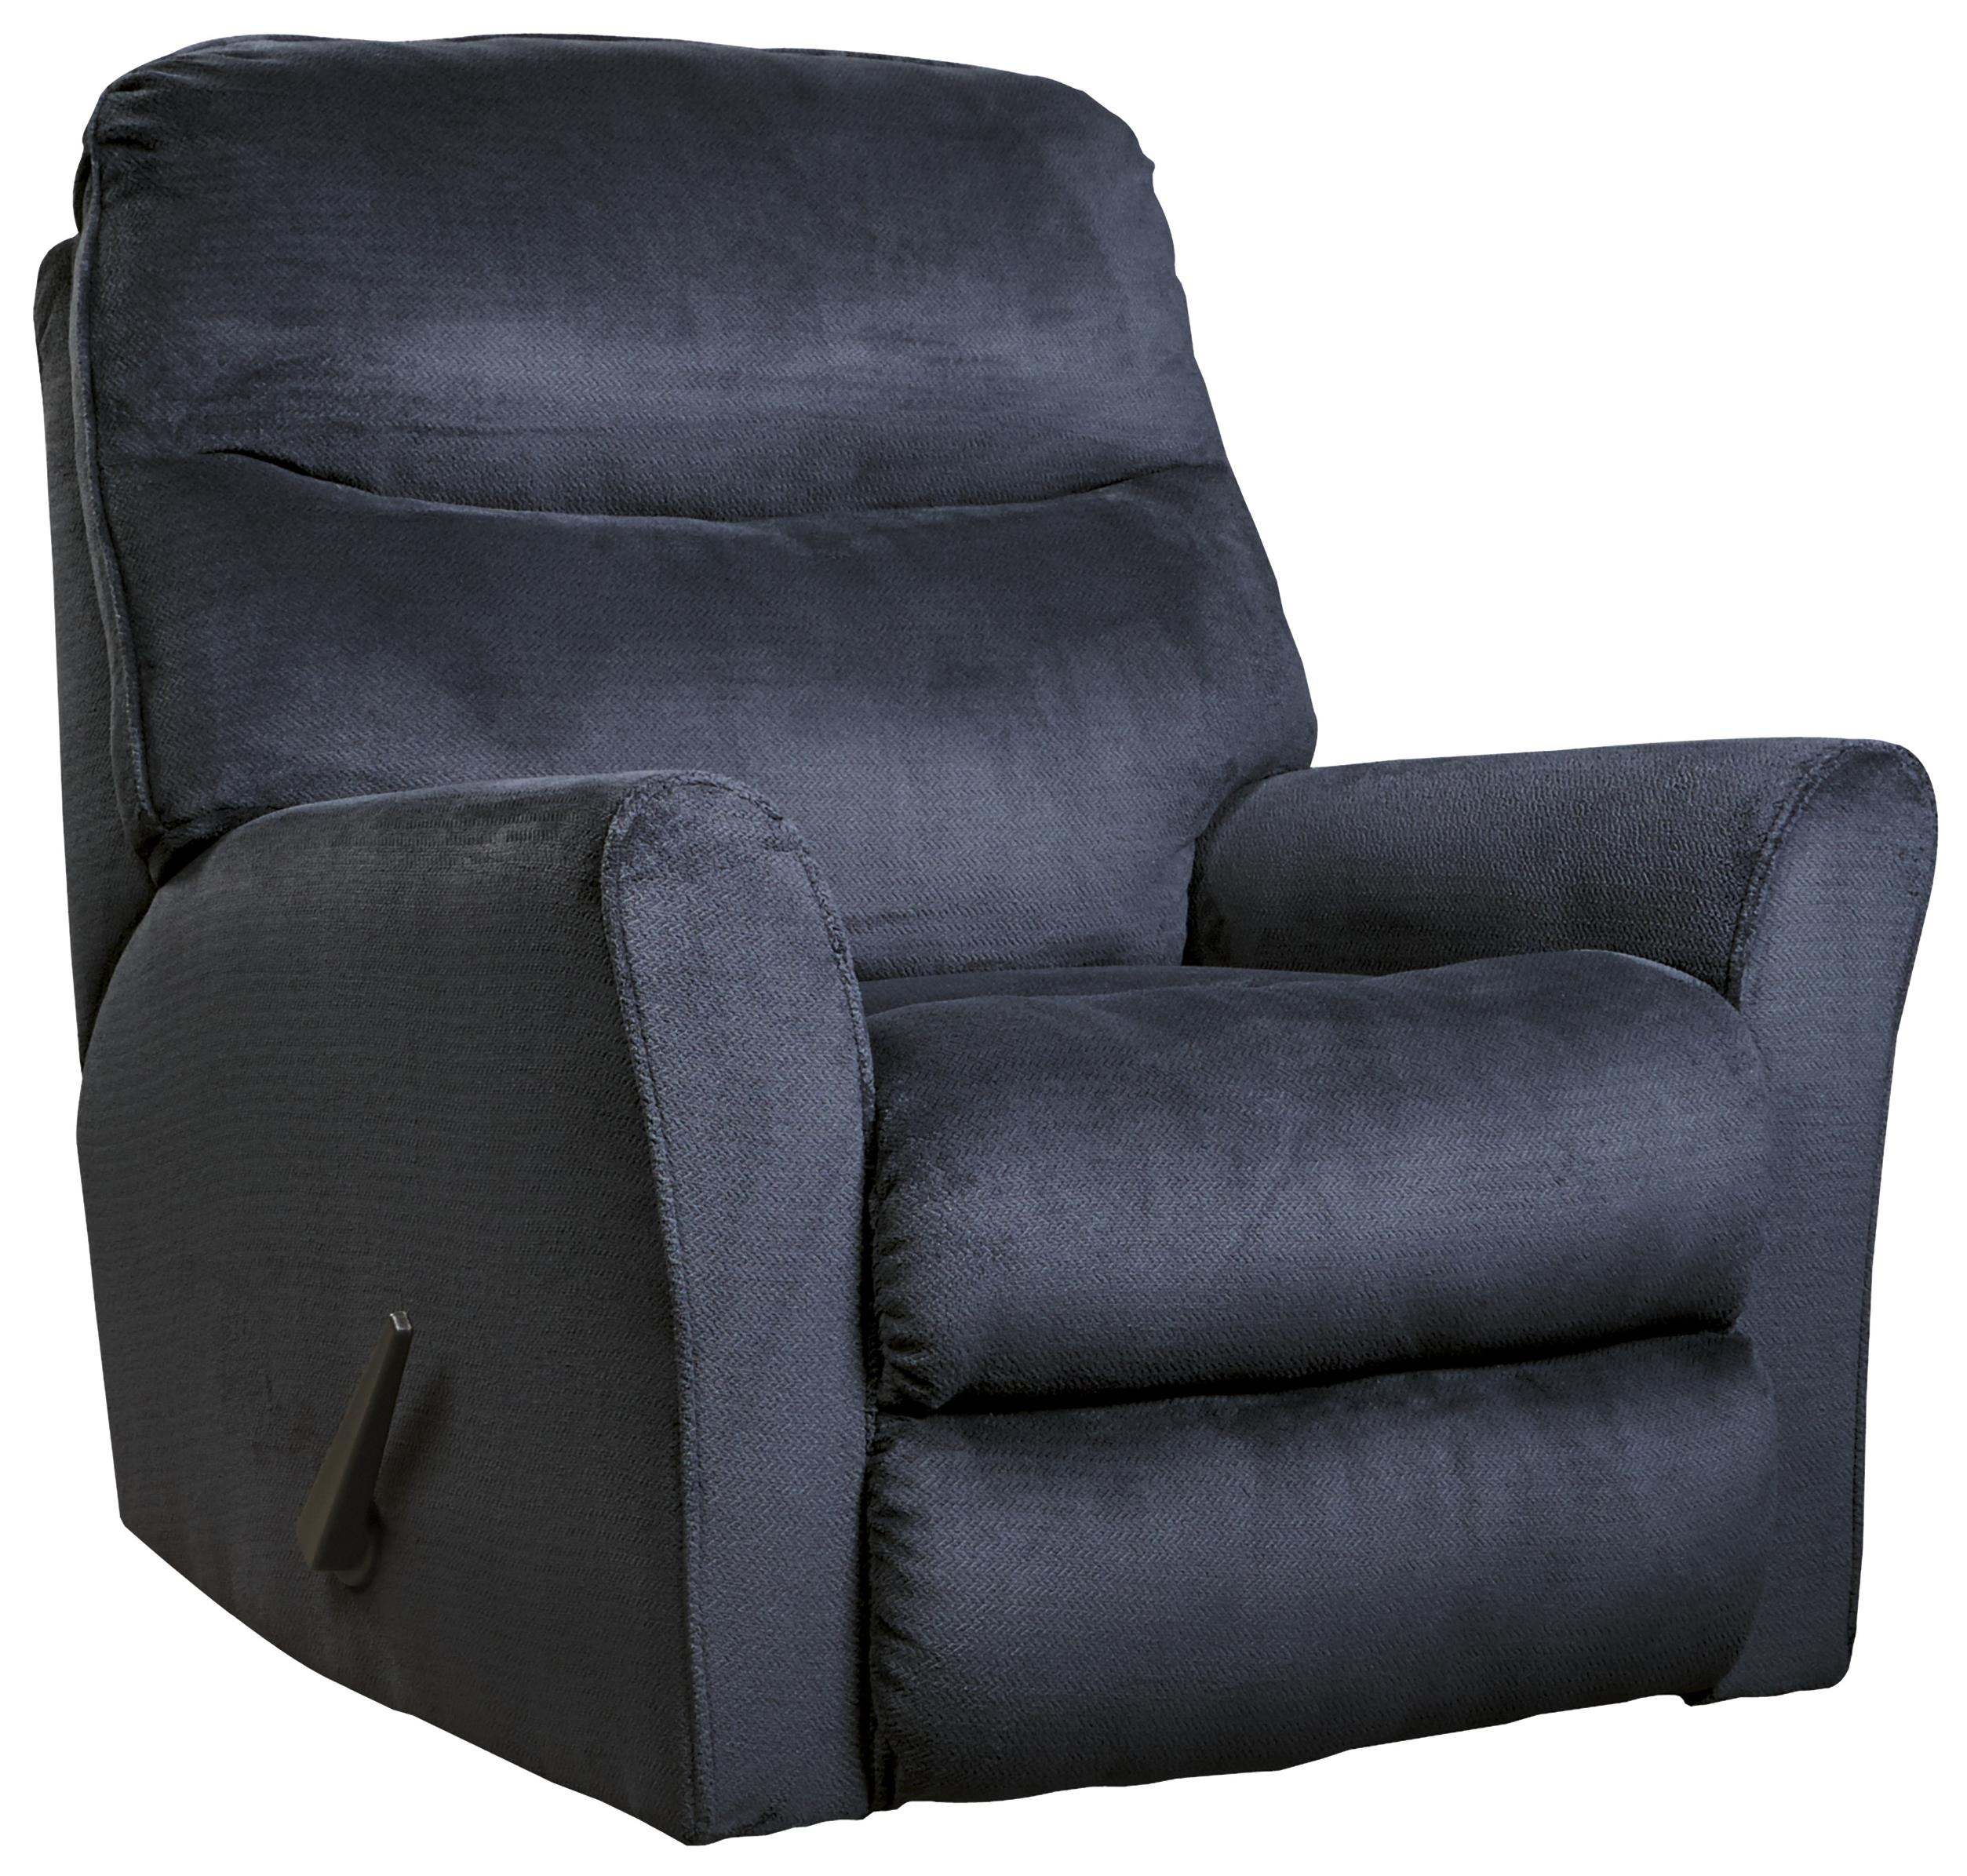 Signature Design by Ashley Cossette Rocker Recliner - Item Number: 6730425